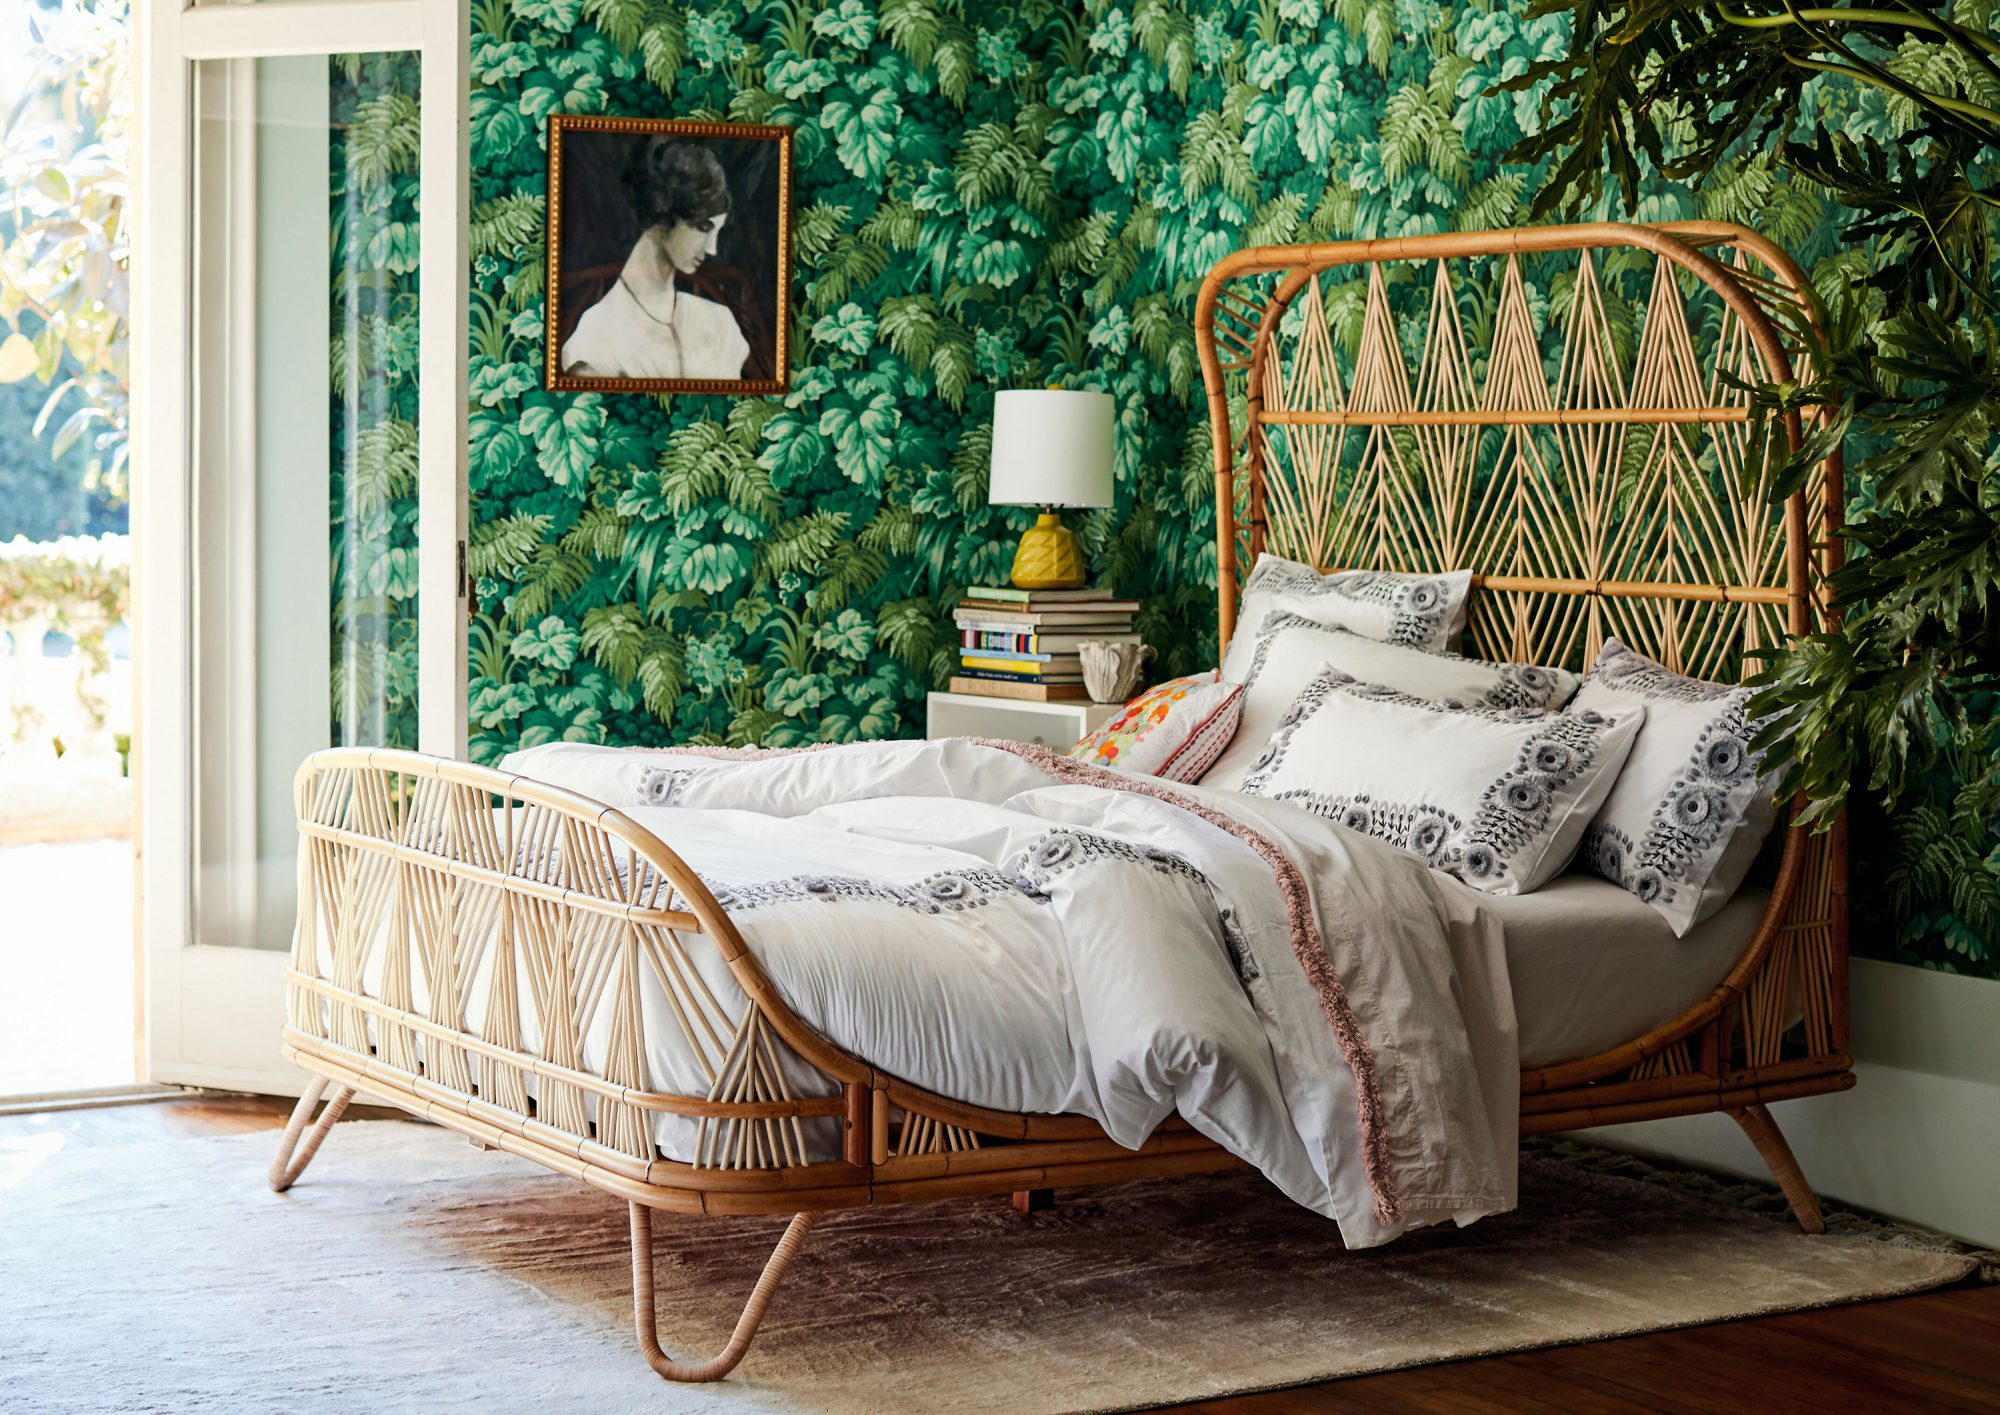 Astounding Anthropologie Spring 2019 Home Decor Bedding And Products Download Free Architecture Designs Scobabritishbridgeorg